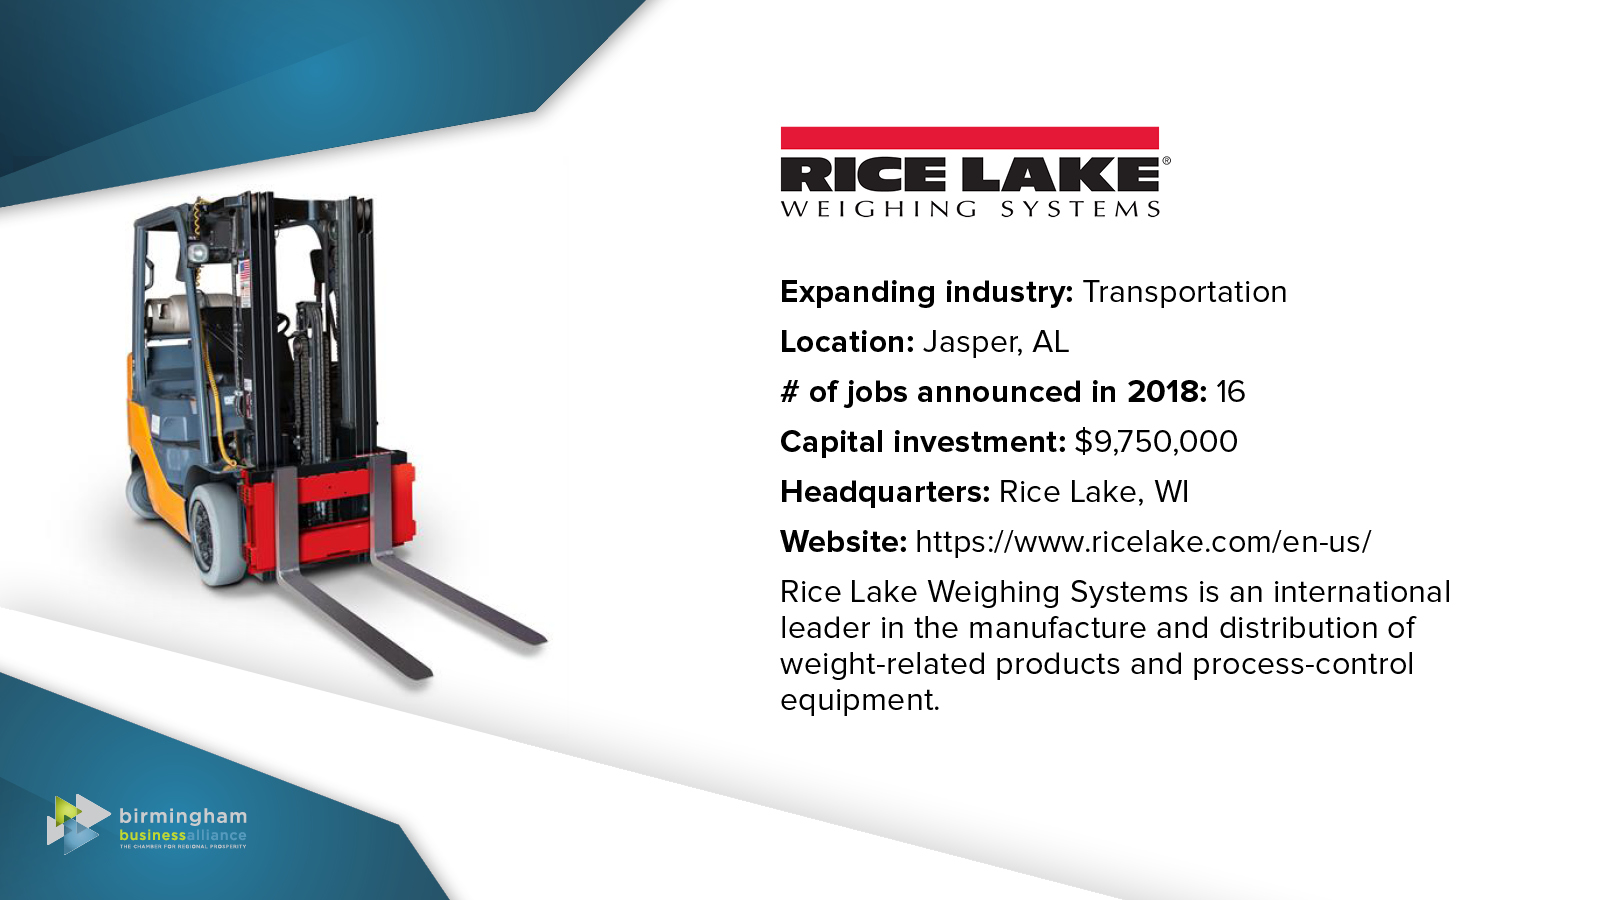 46) Rice Lake Weighing Systems